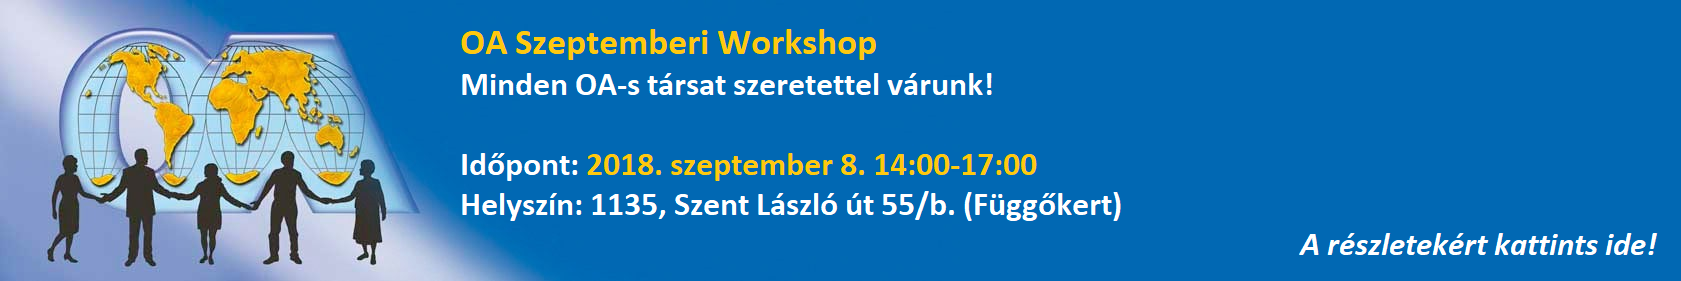 OA Workshop